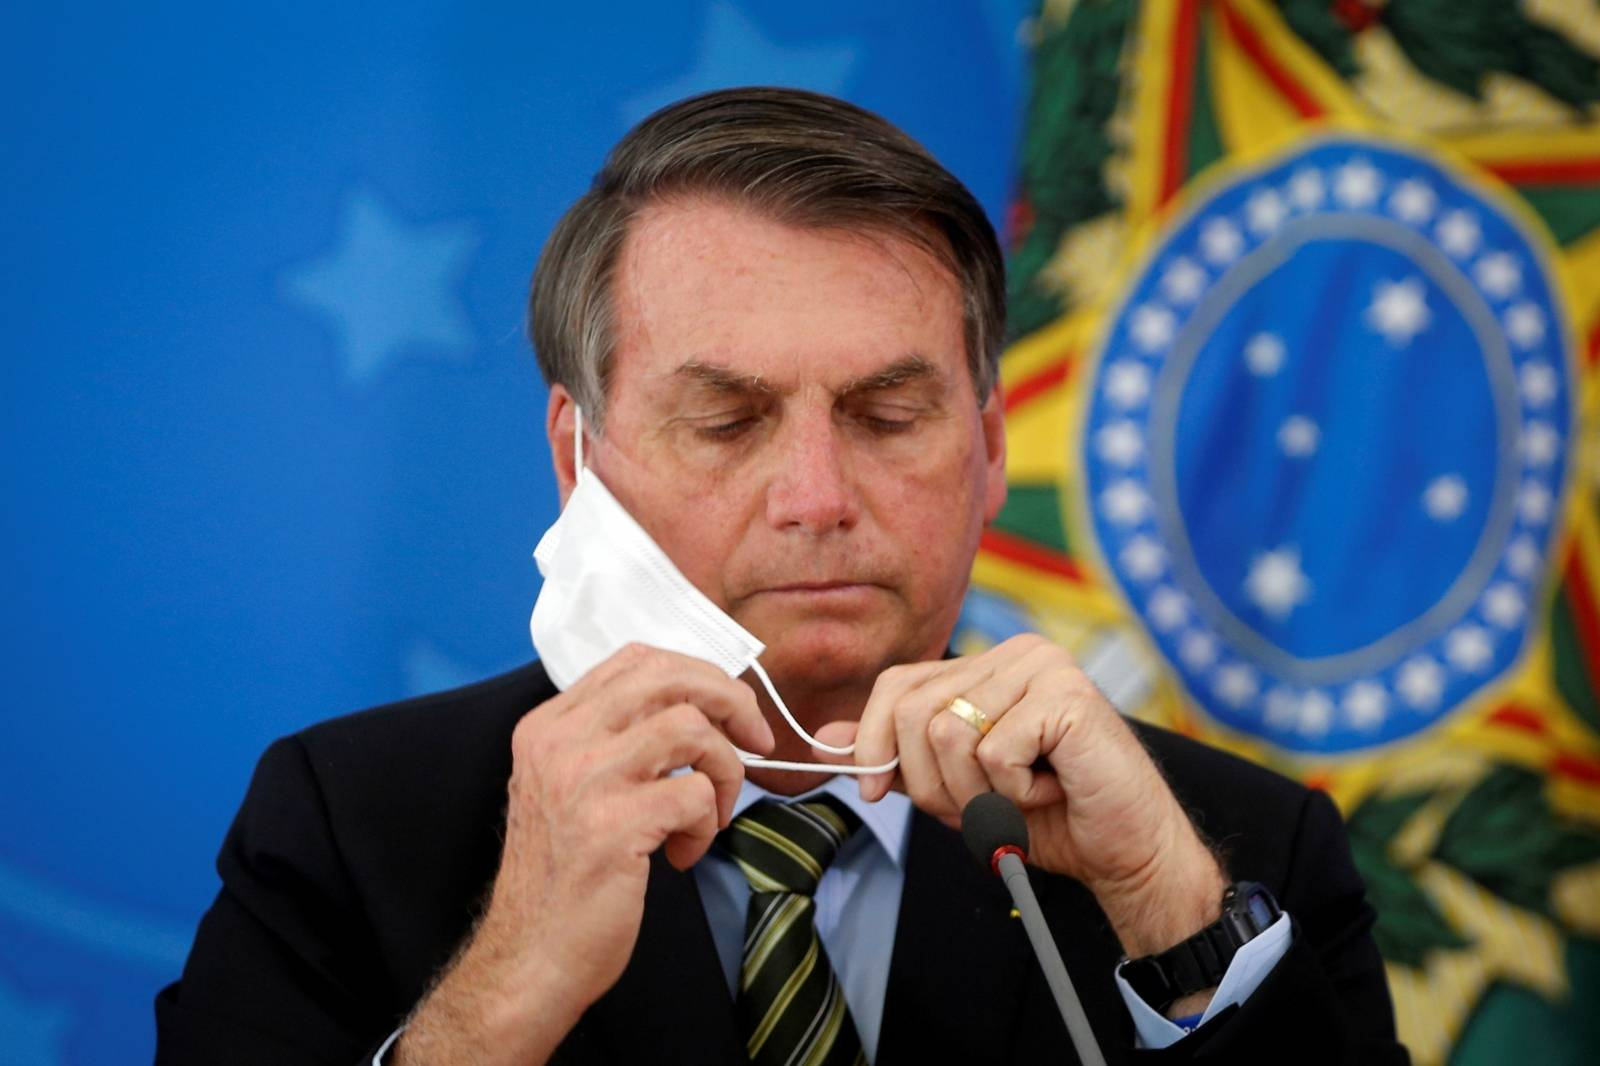 FILE PHOTO: Brazil's President Jair Bolsonaro adjusts his protective face mask during a press statement to announce federal judiciary measures to curb the spread of the coronavirus disease (COVID-19) in Brasilia